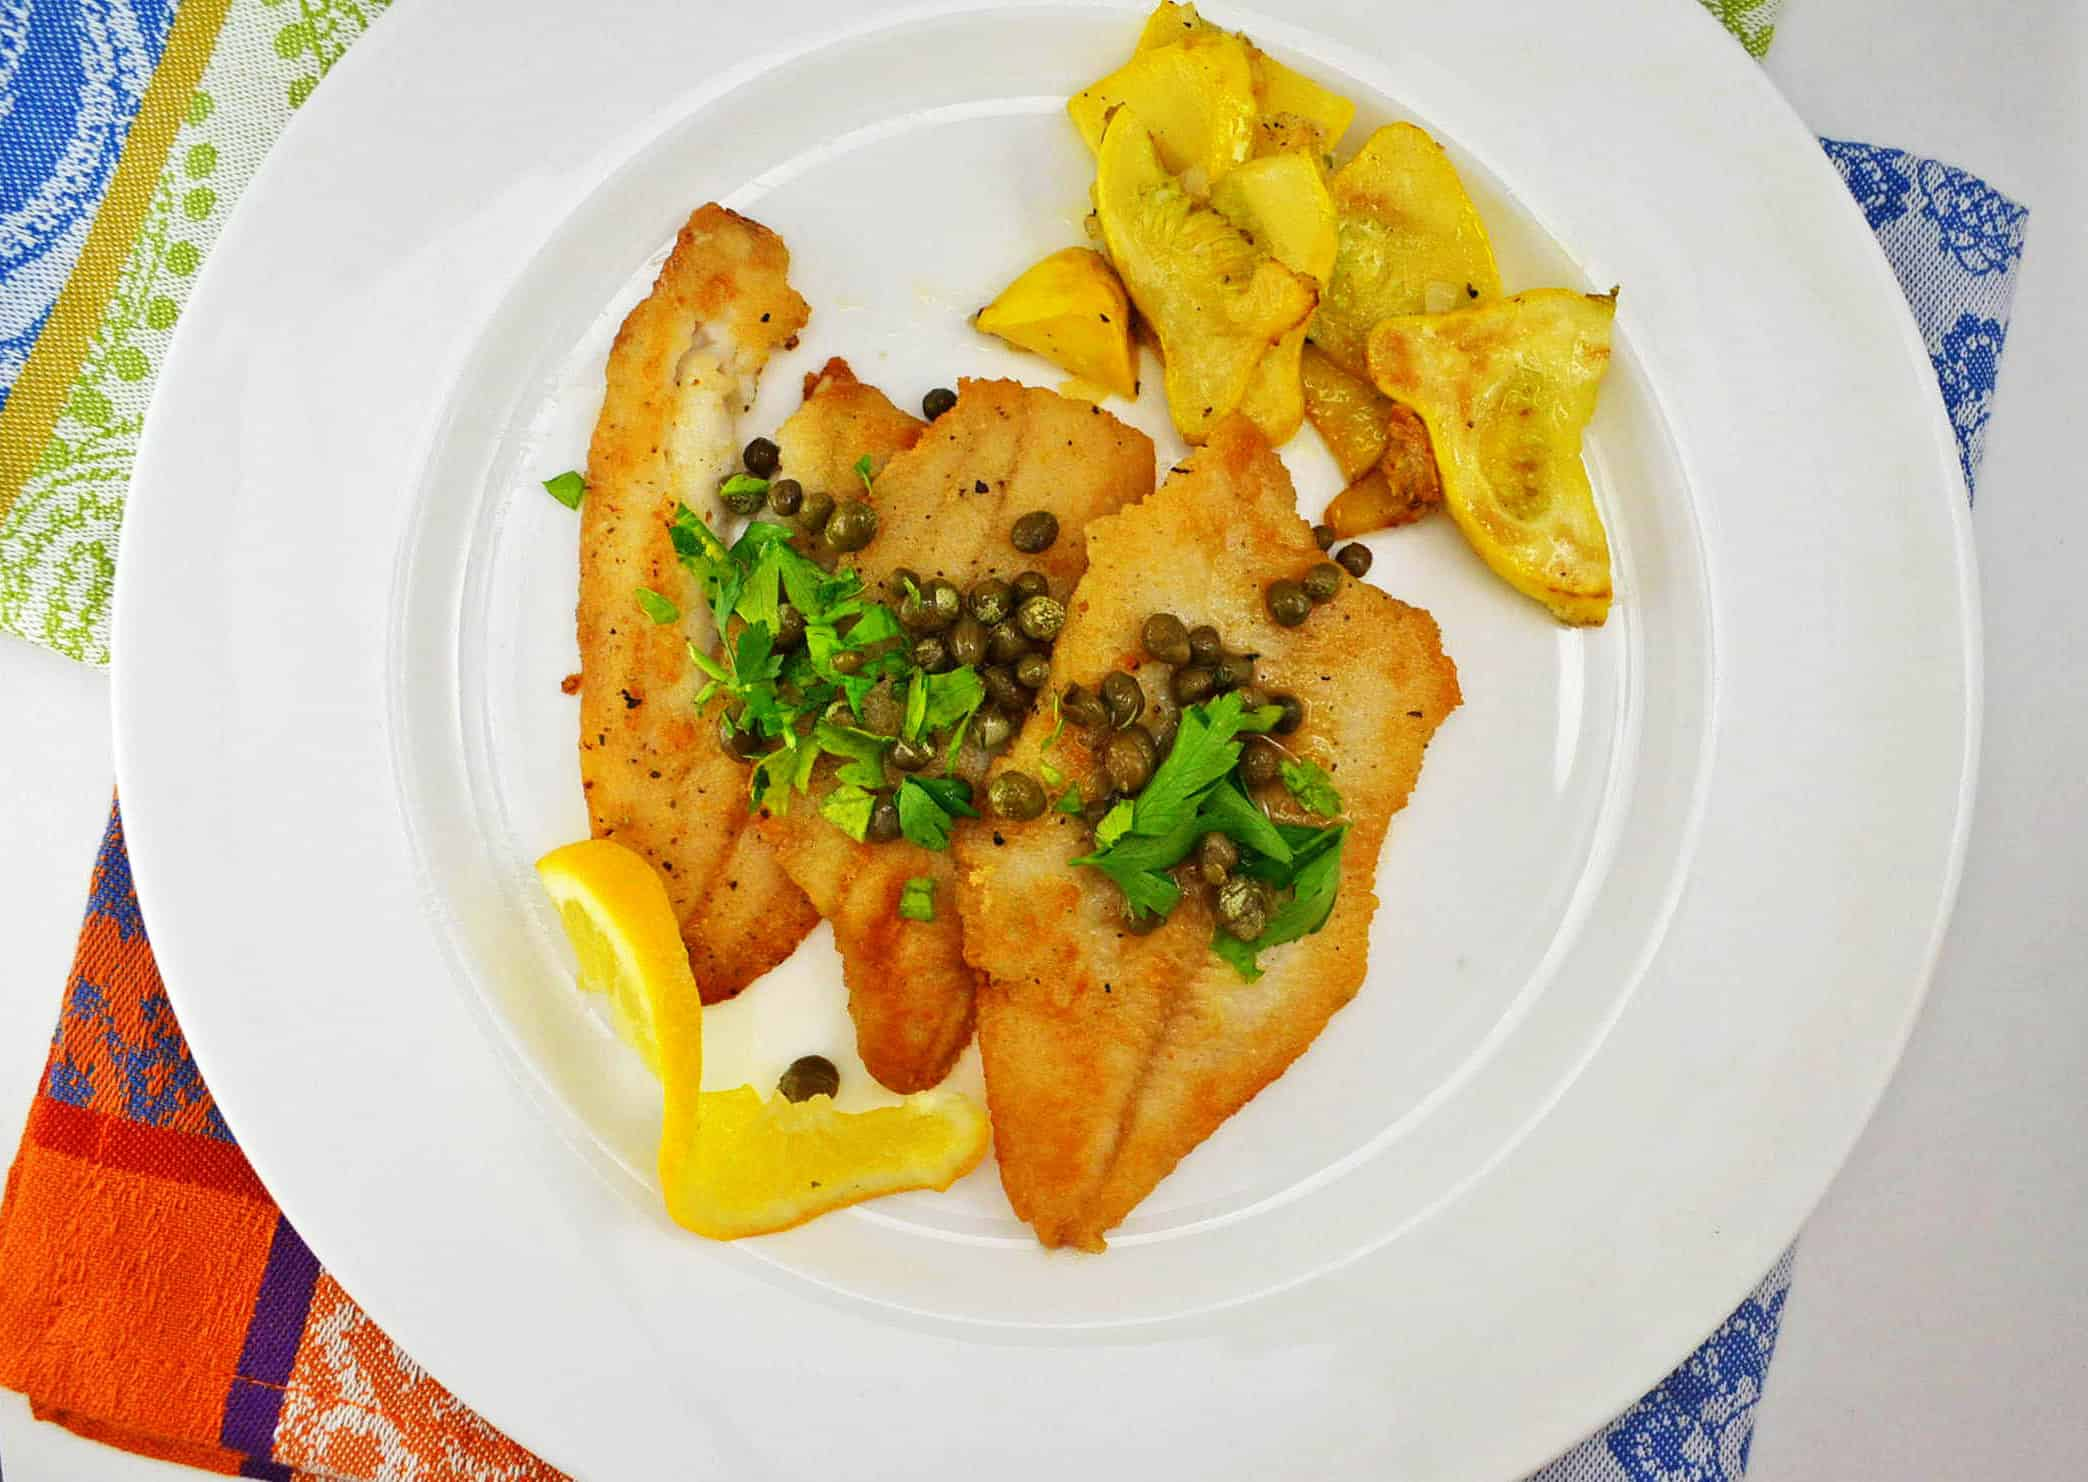 Julia Child's Fillets of Sole Meuniere